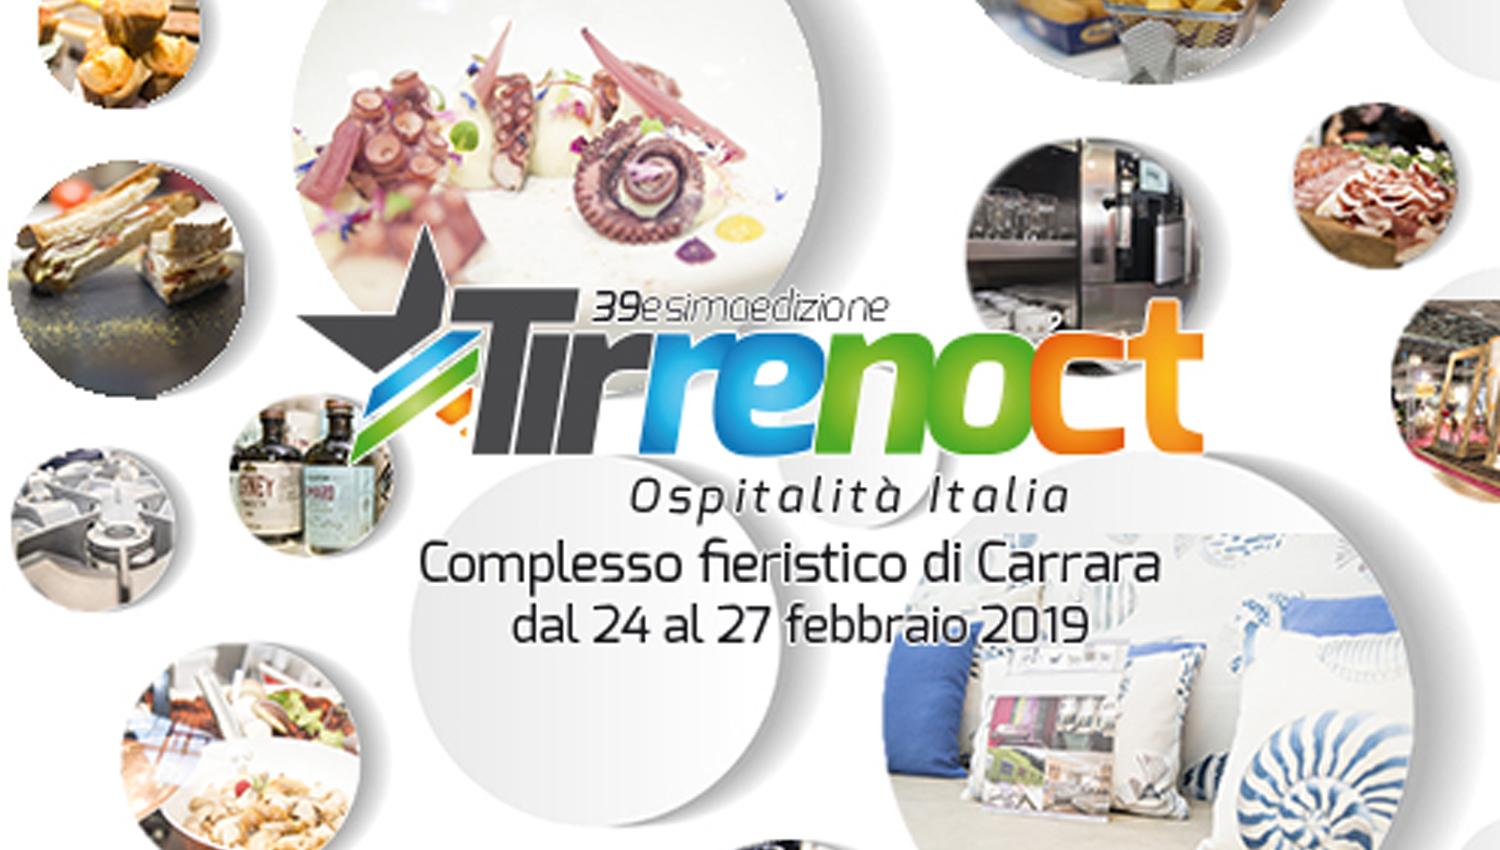 tirreno ct - VNE sarà a Tirreno C.T. - vne - fiere